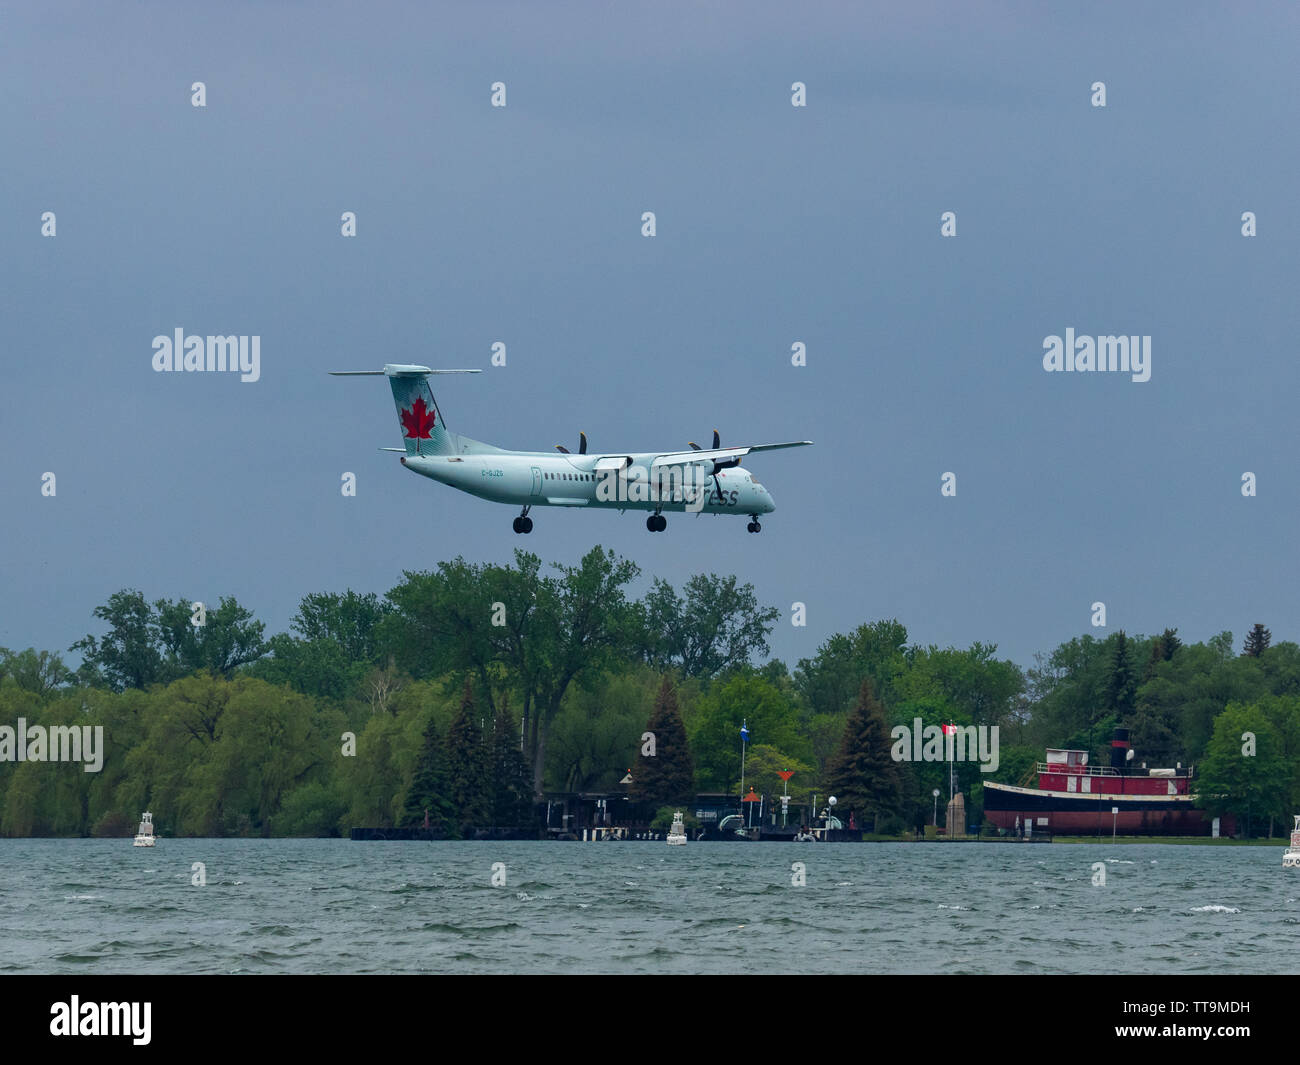 Air Canada Express De Havilland Canada DHC-8-400 flying in 33km/h or 20.5mph wind, past Centre Island on approach for landing on the island airport. - Stock Image